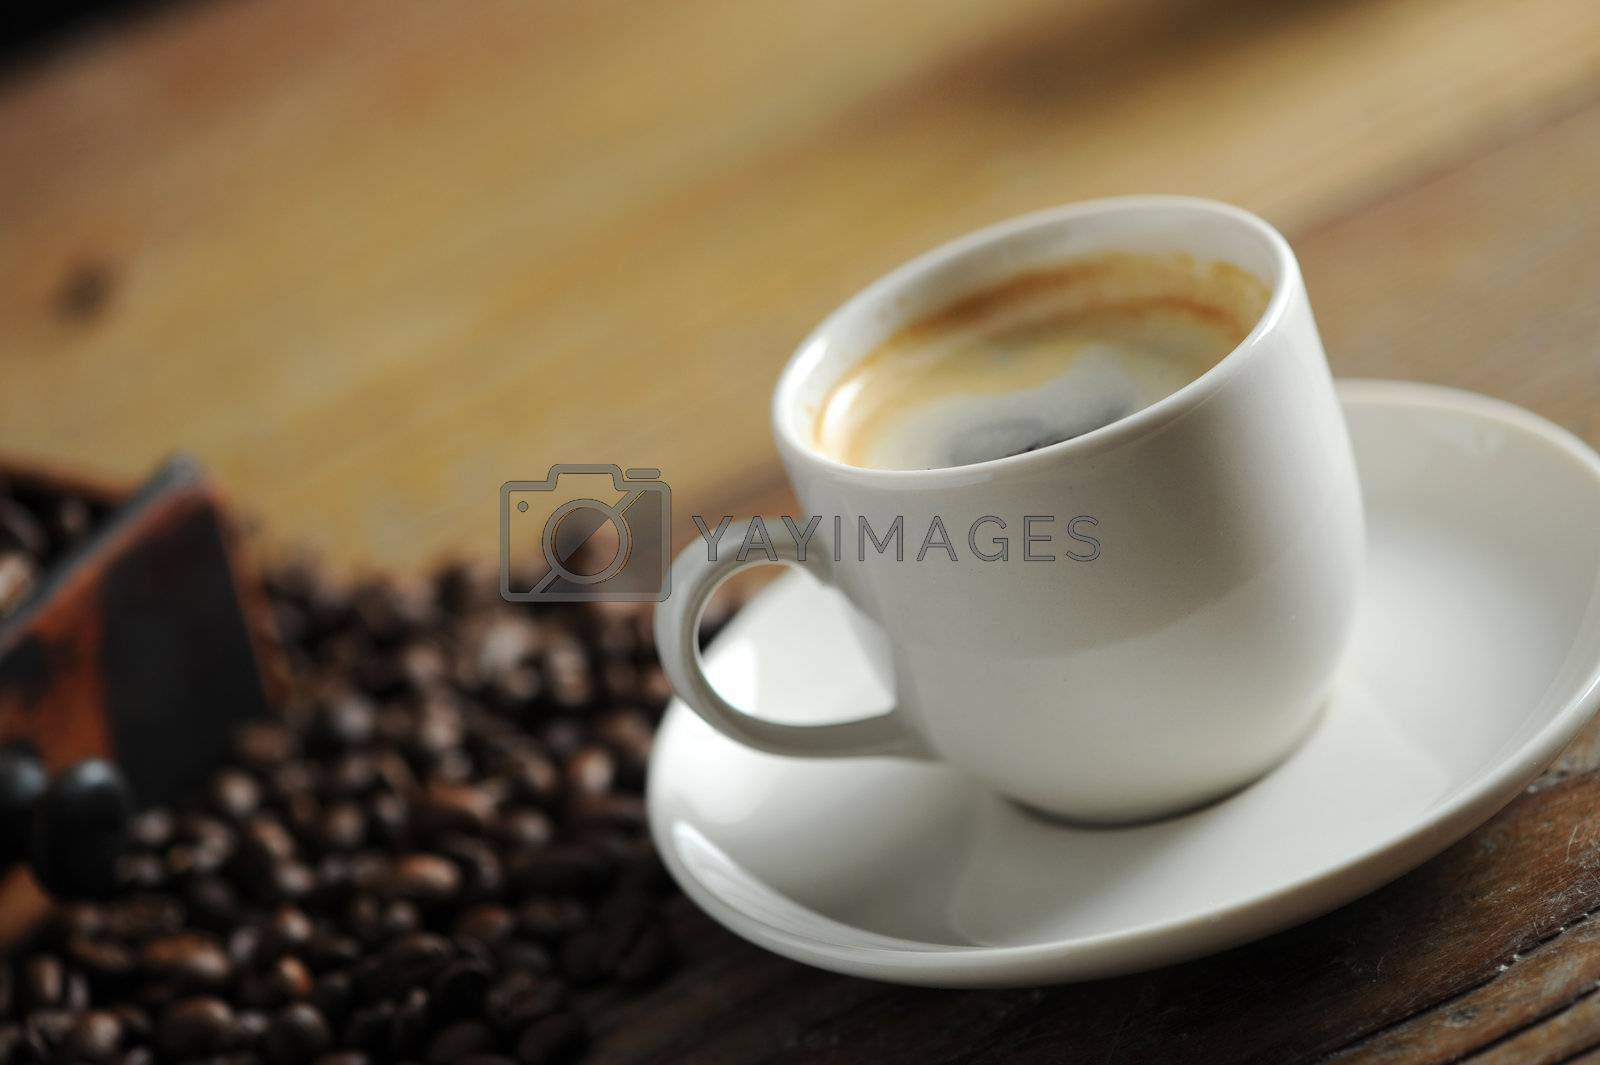 cup of coffee close up